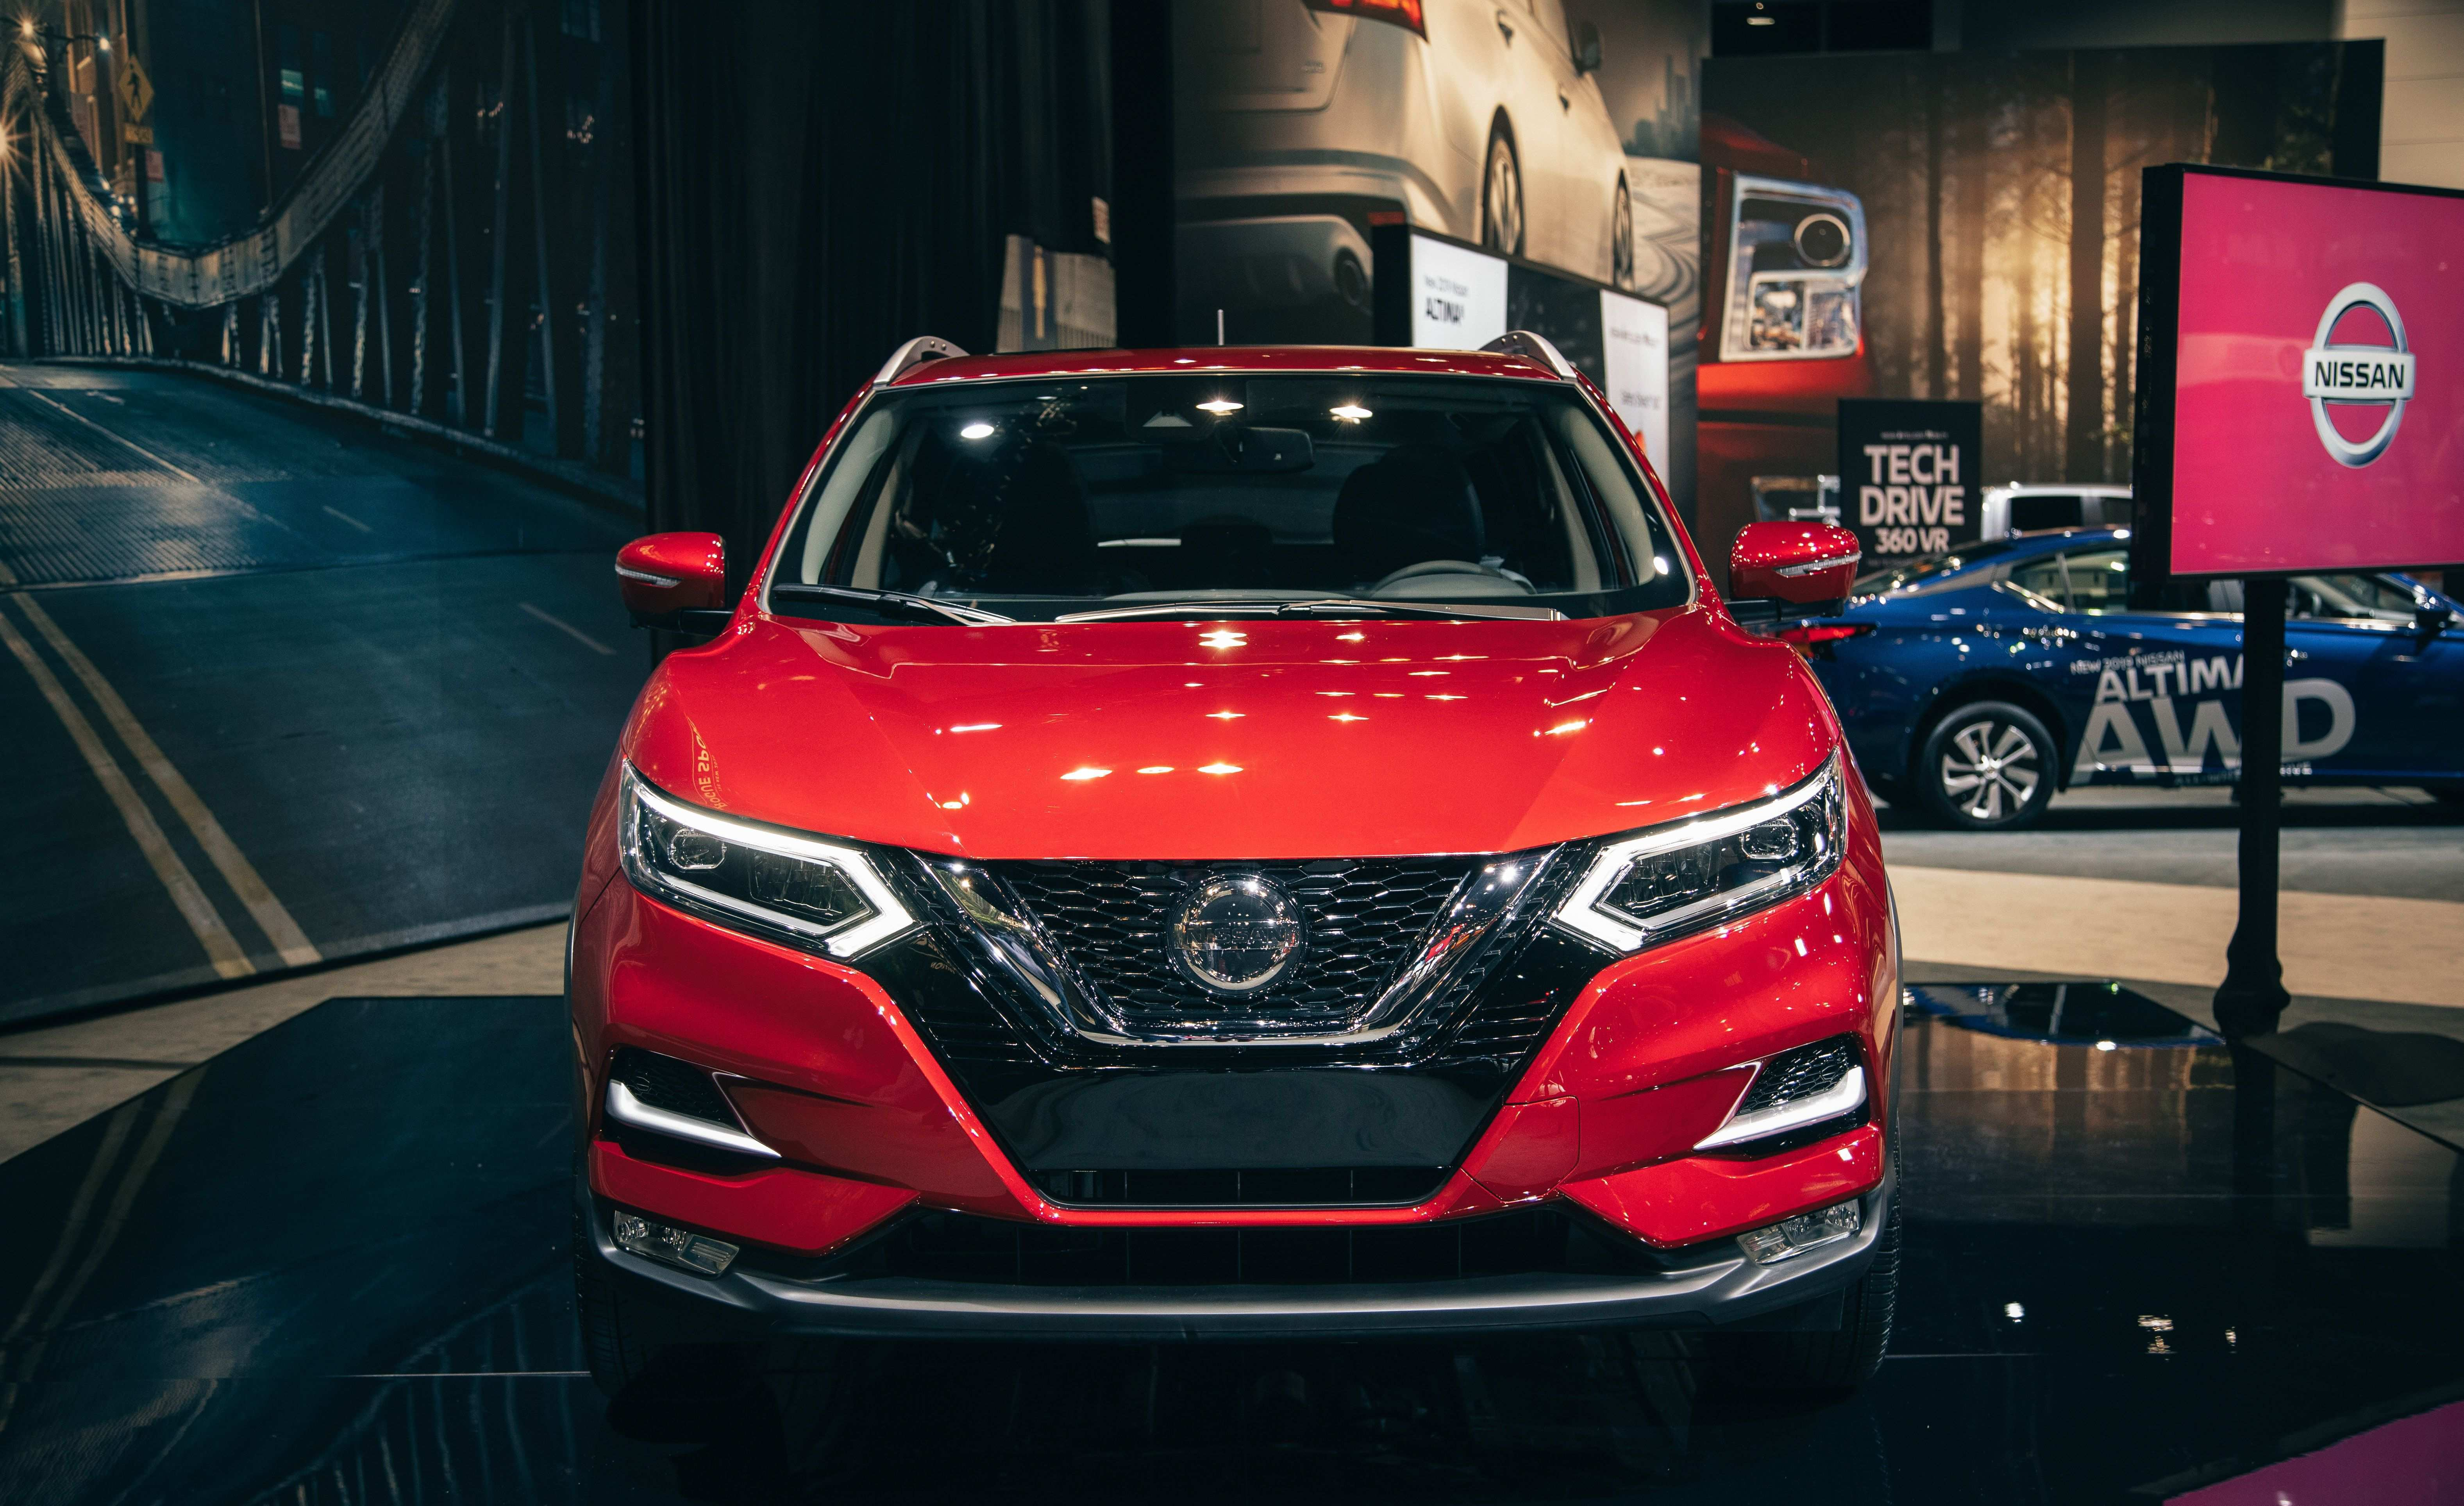 79 Best Nissan Rogue 2020 Release Date Review